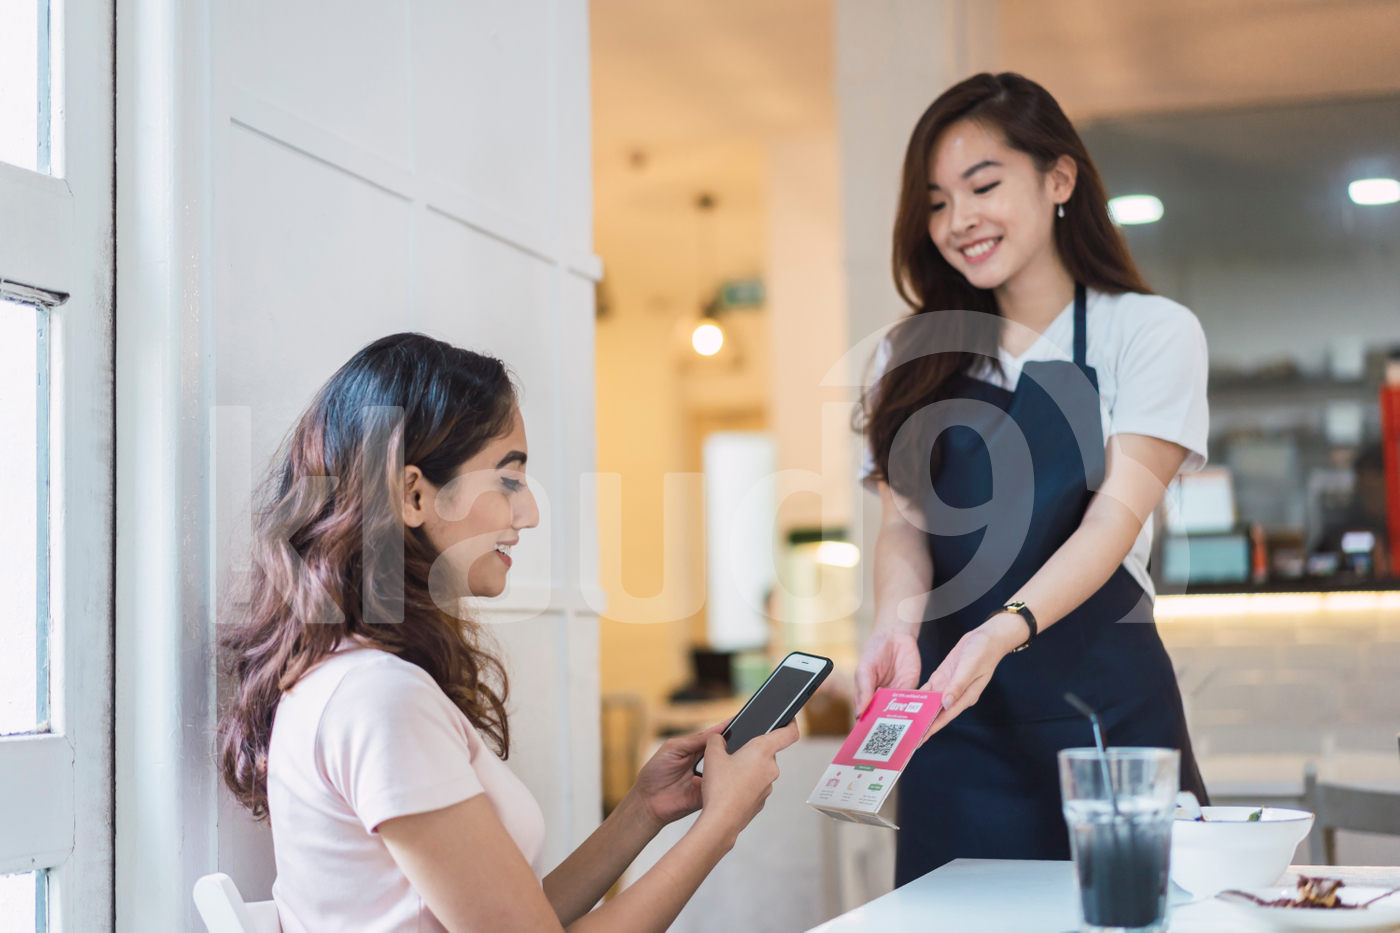 Asian client making payment with mobile at table